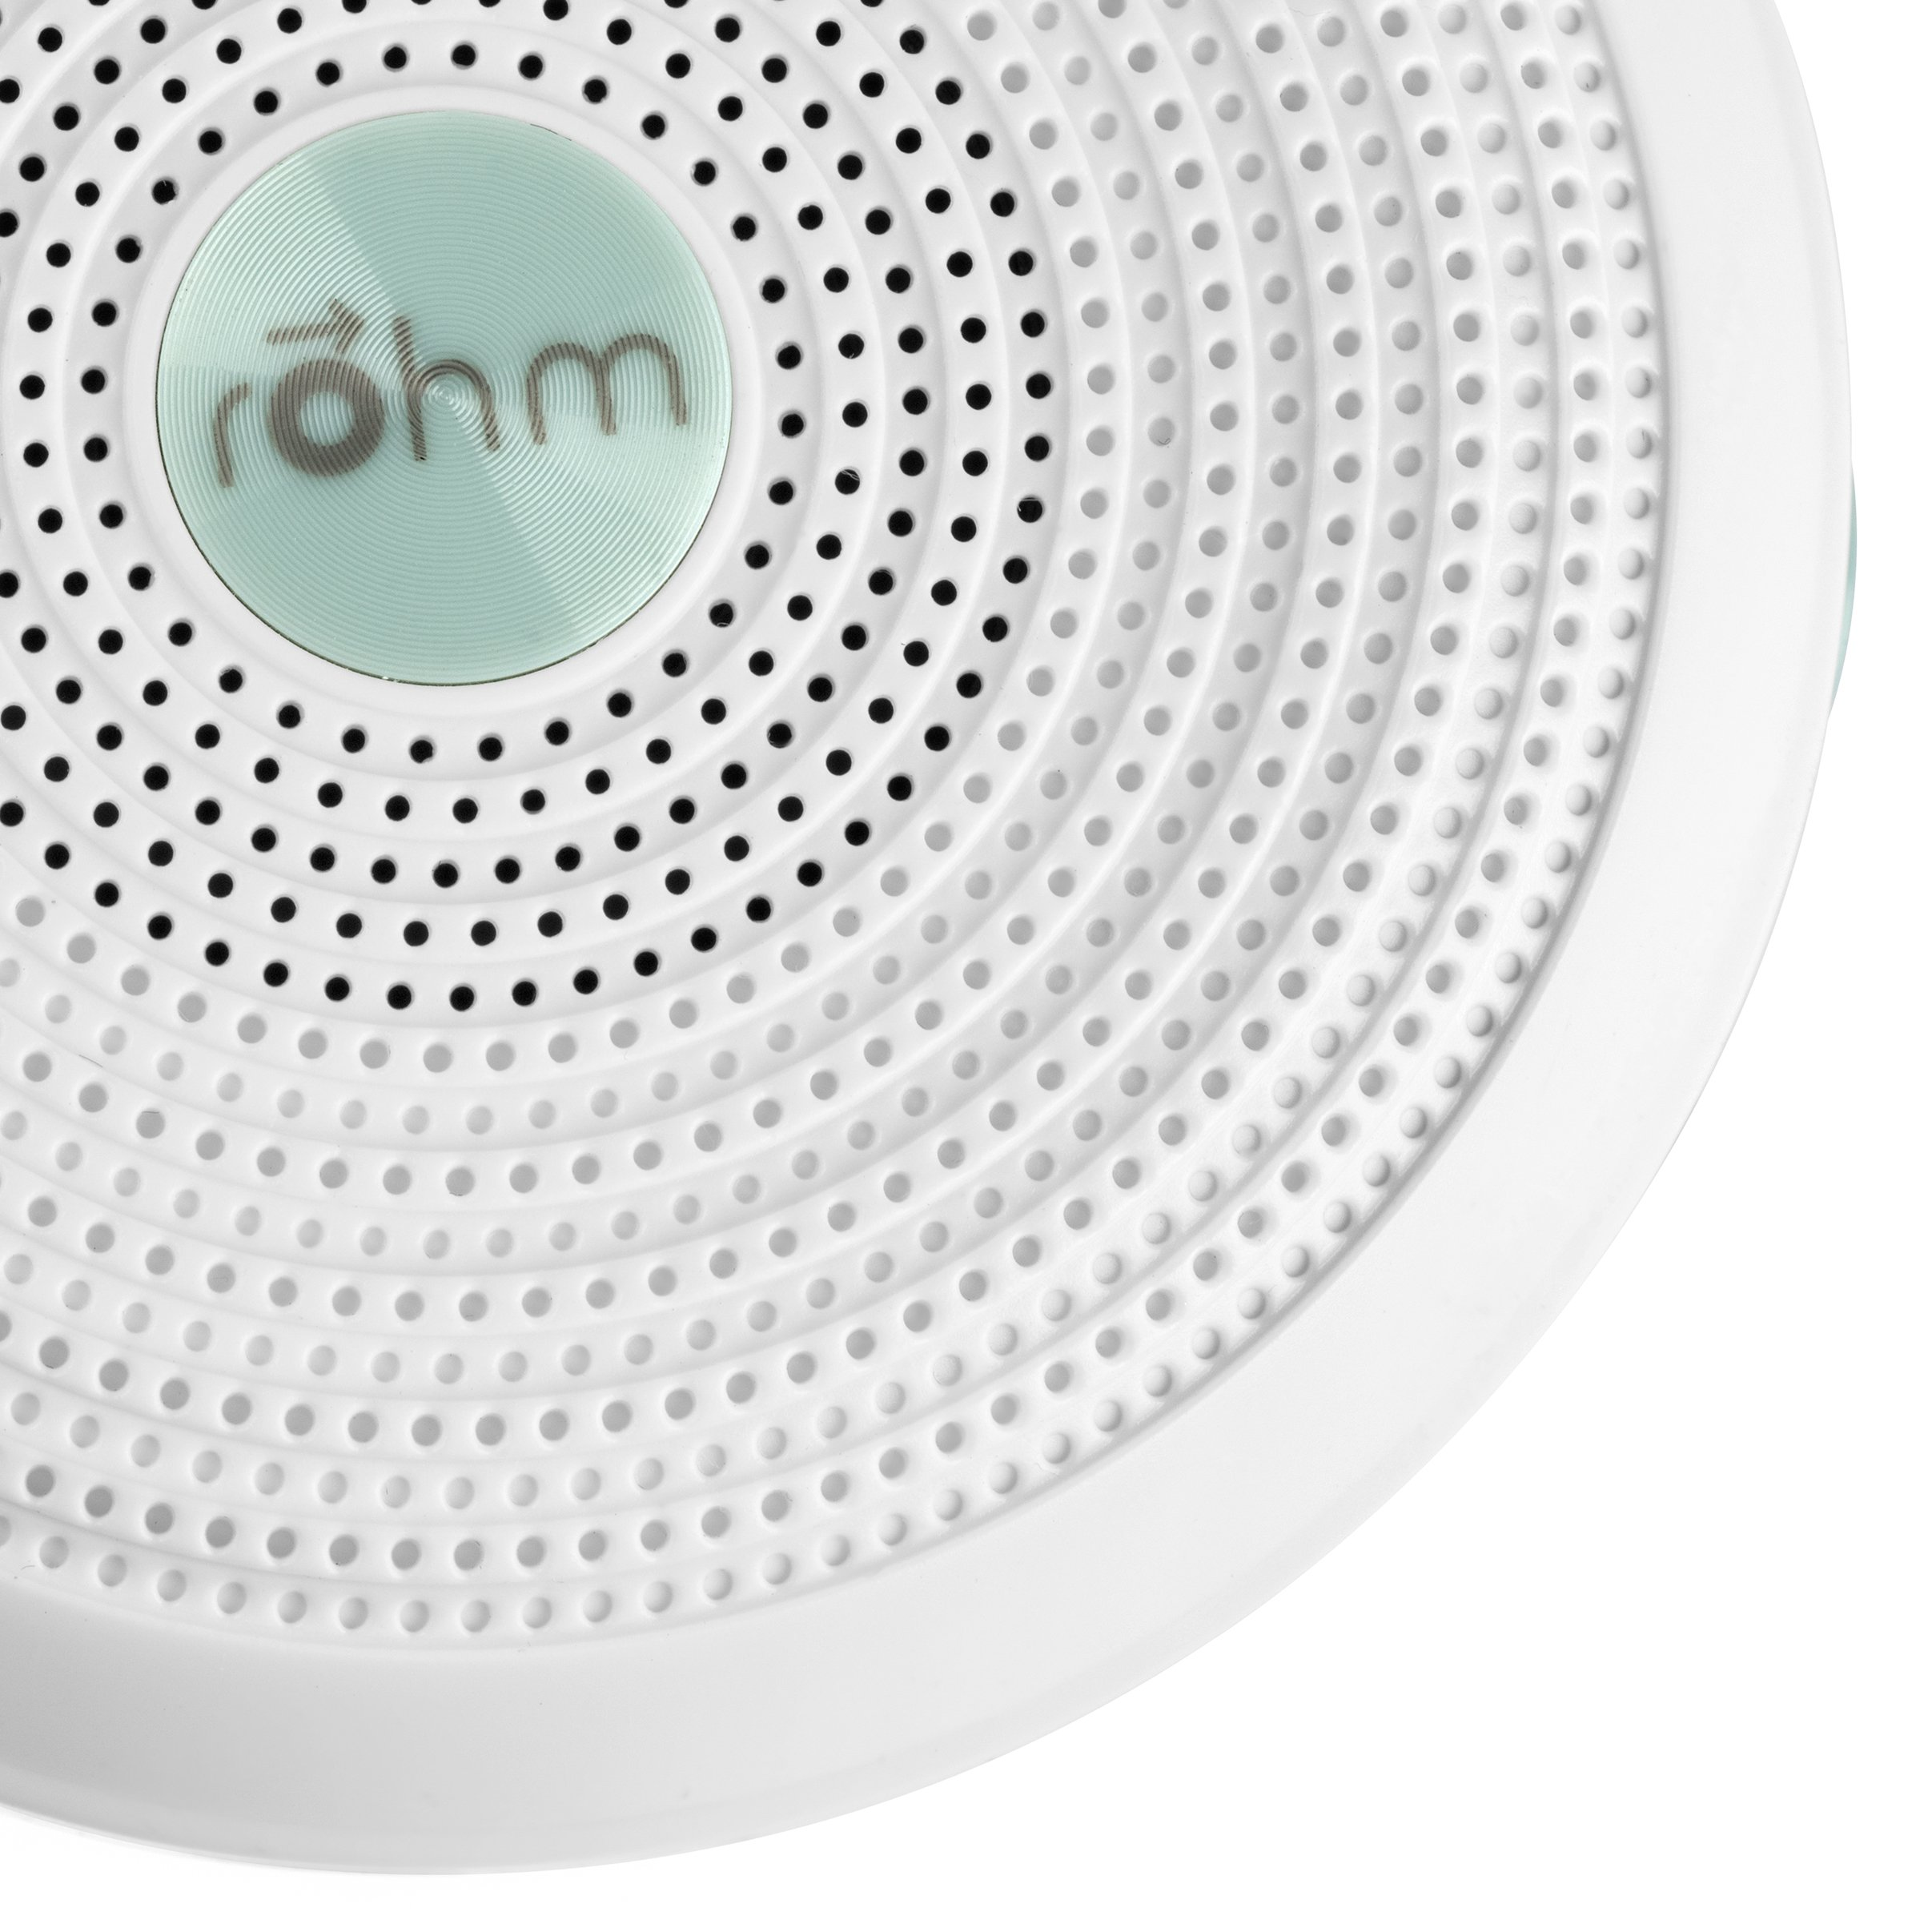 Marpac Rohm Portable White Noise Sound Machine, Electronic, White, 3.7 Ounce by Marpac (Image #10)